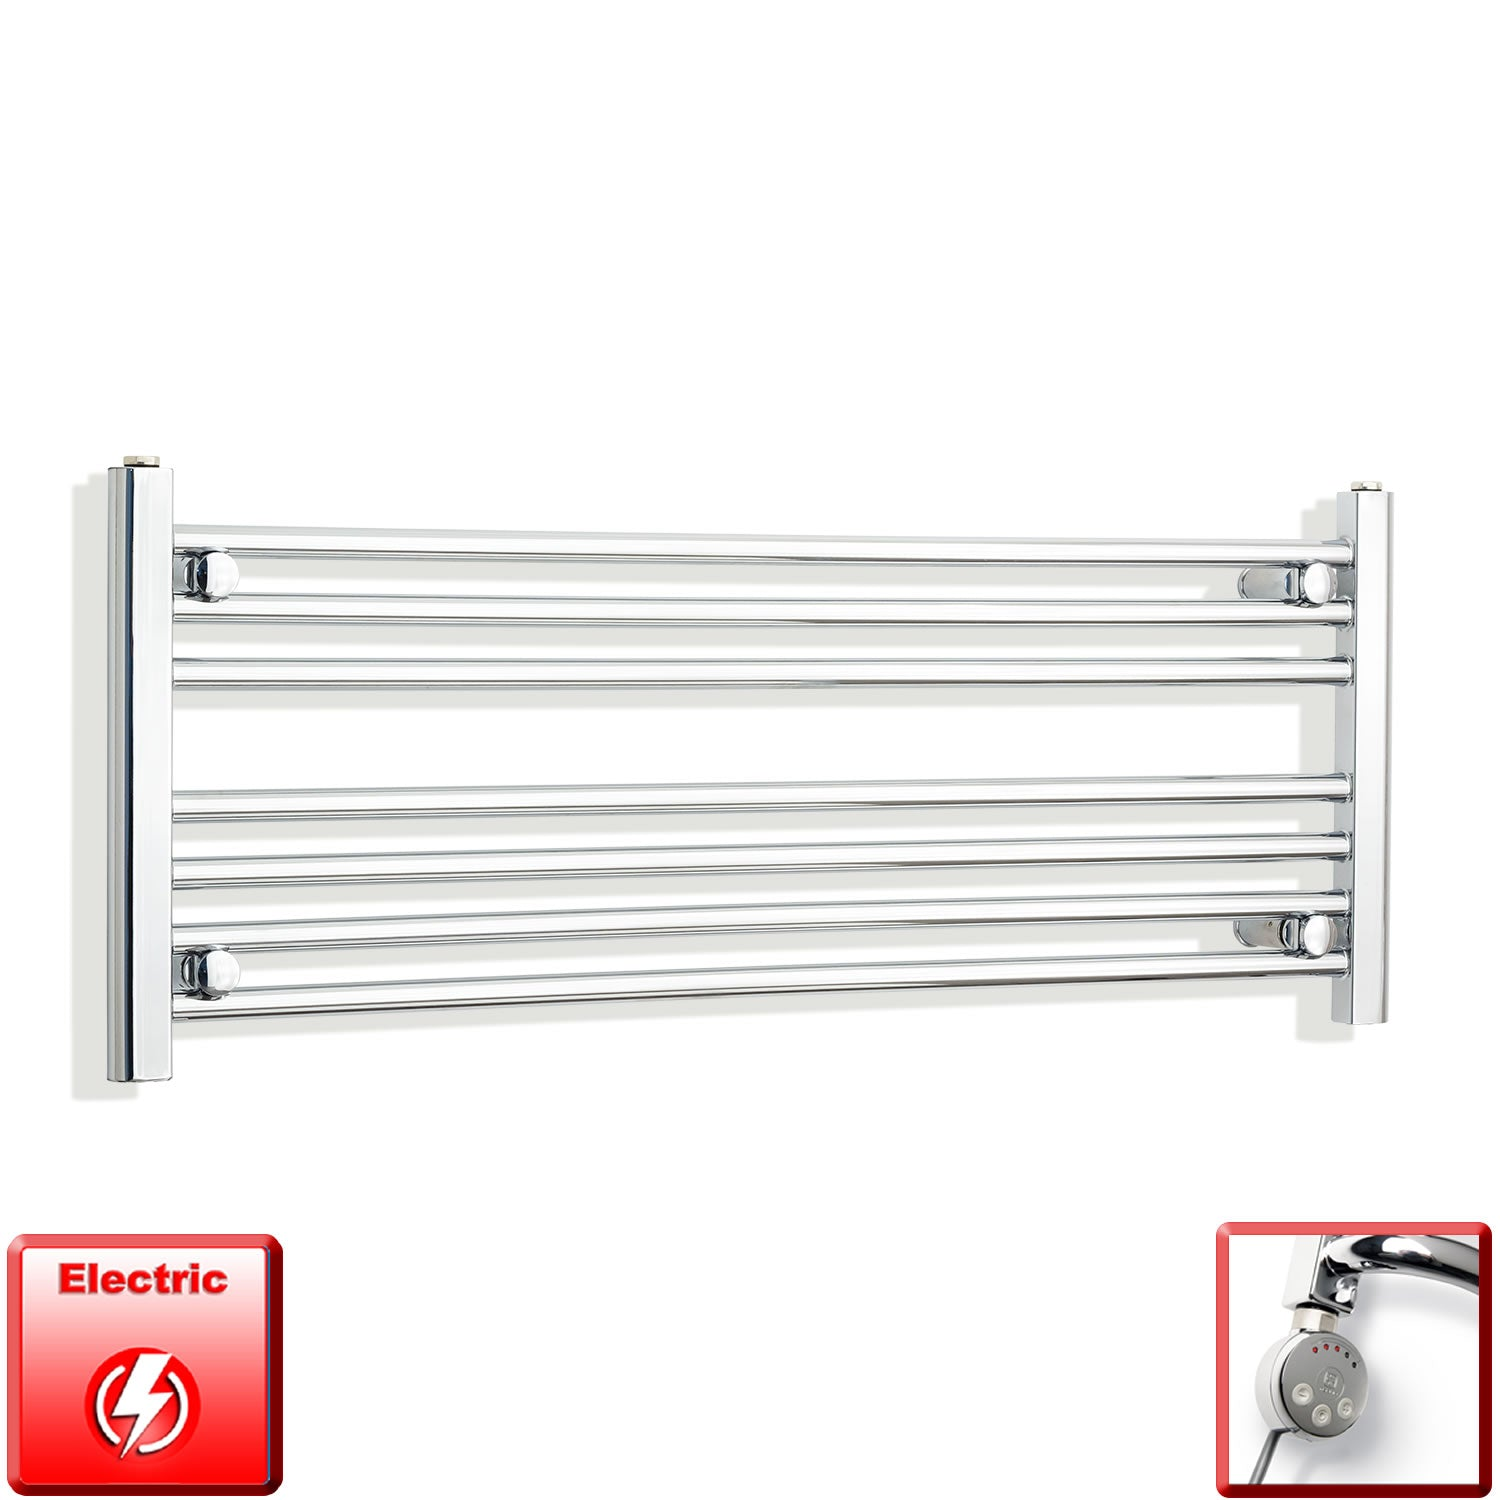 1200mm Wide 400mm High Flat Chrome Pre-Filled Electric Heated Towel Rail Radiator HTR,MEG Thermostatic Element